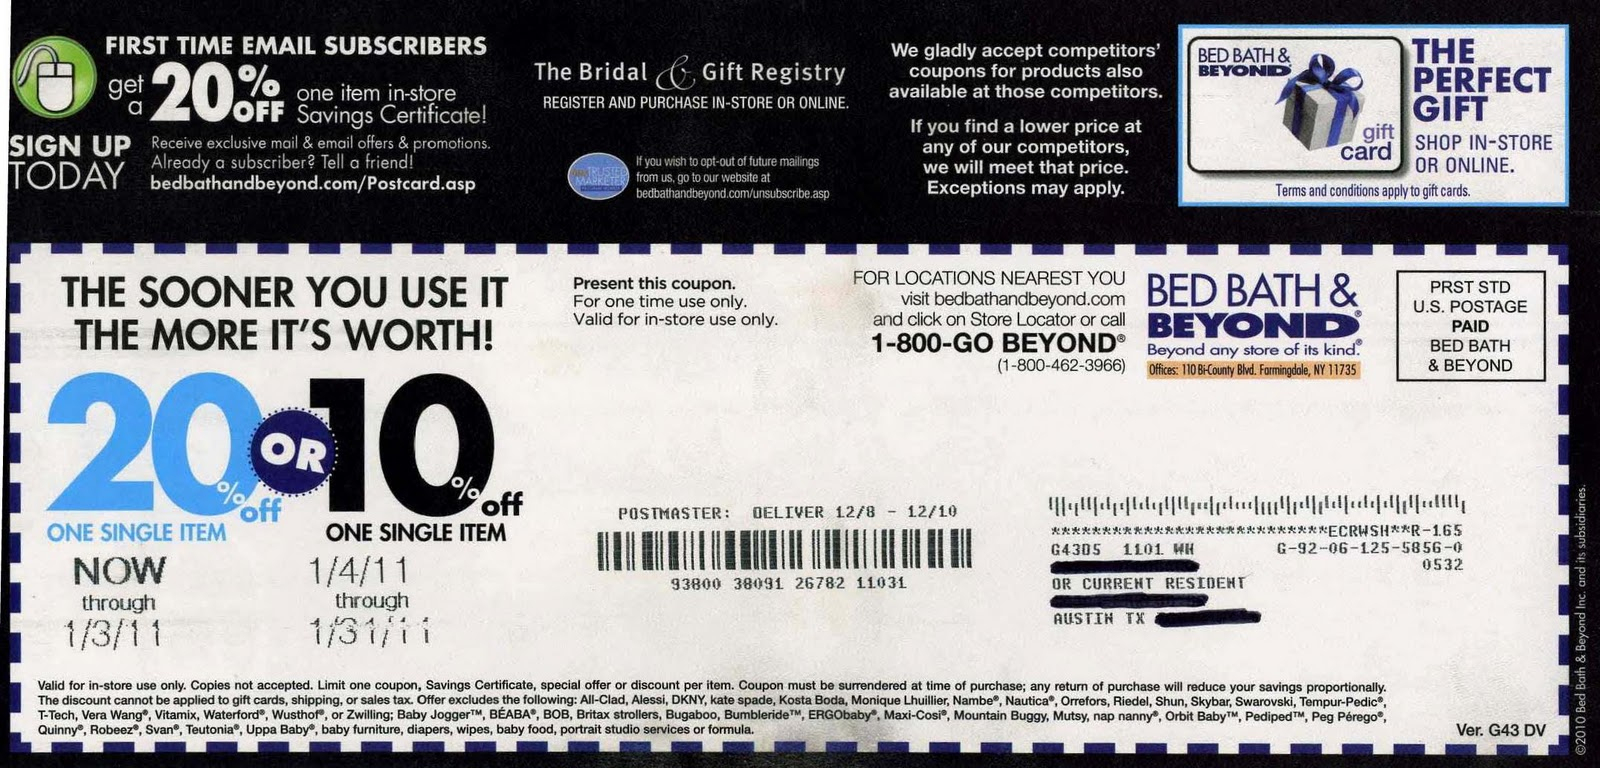 Bed Bath And Beyond Coupons And Printable Coupons: Bed Bath And - Free Printable Bed Bath And Beyond 20 Off Coupon